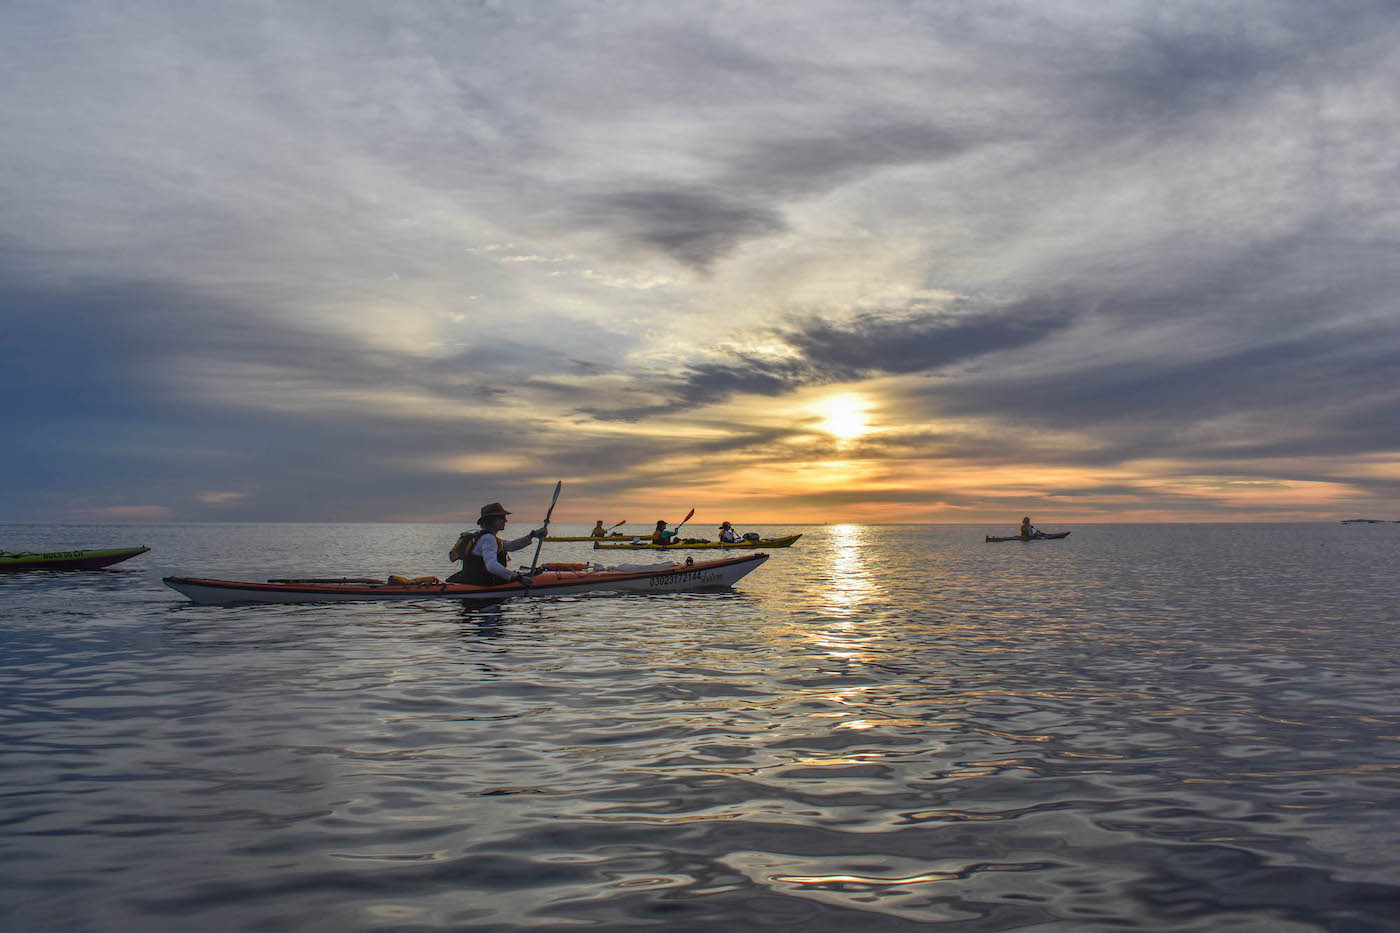 NOLS participants paddle kayaks on smooth gray water as the sun sets into the clouds over the ocean